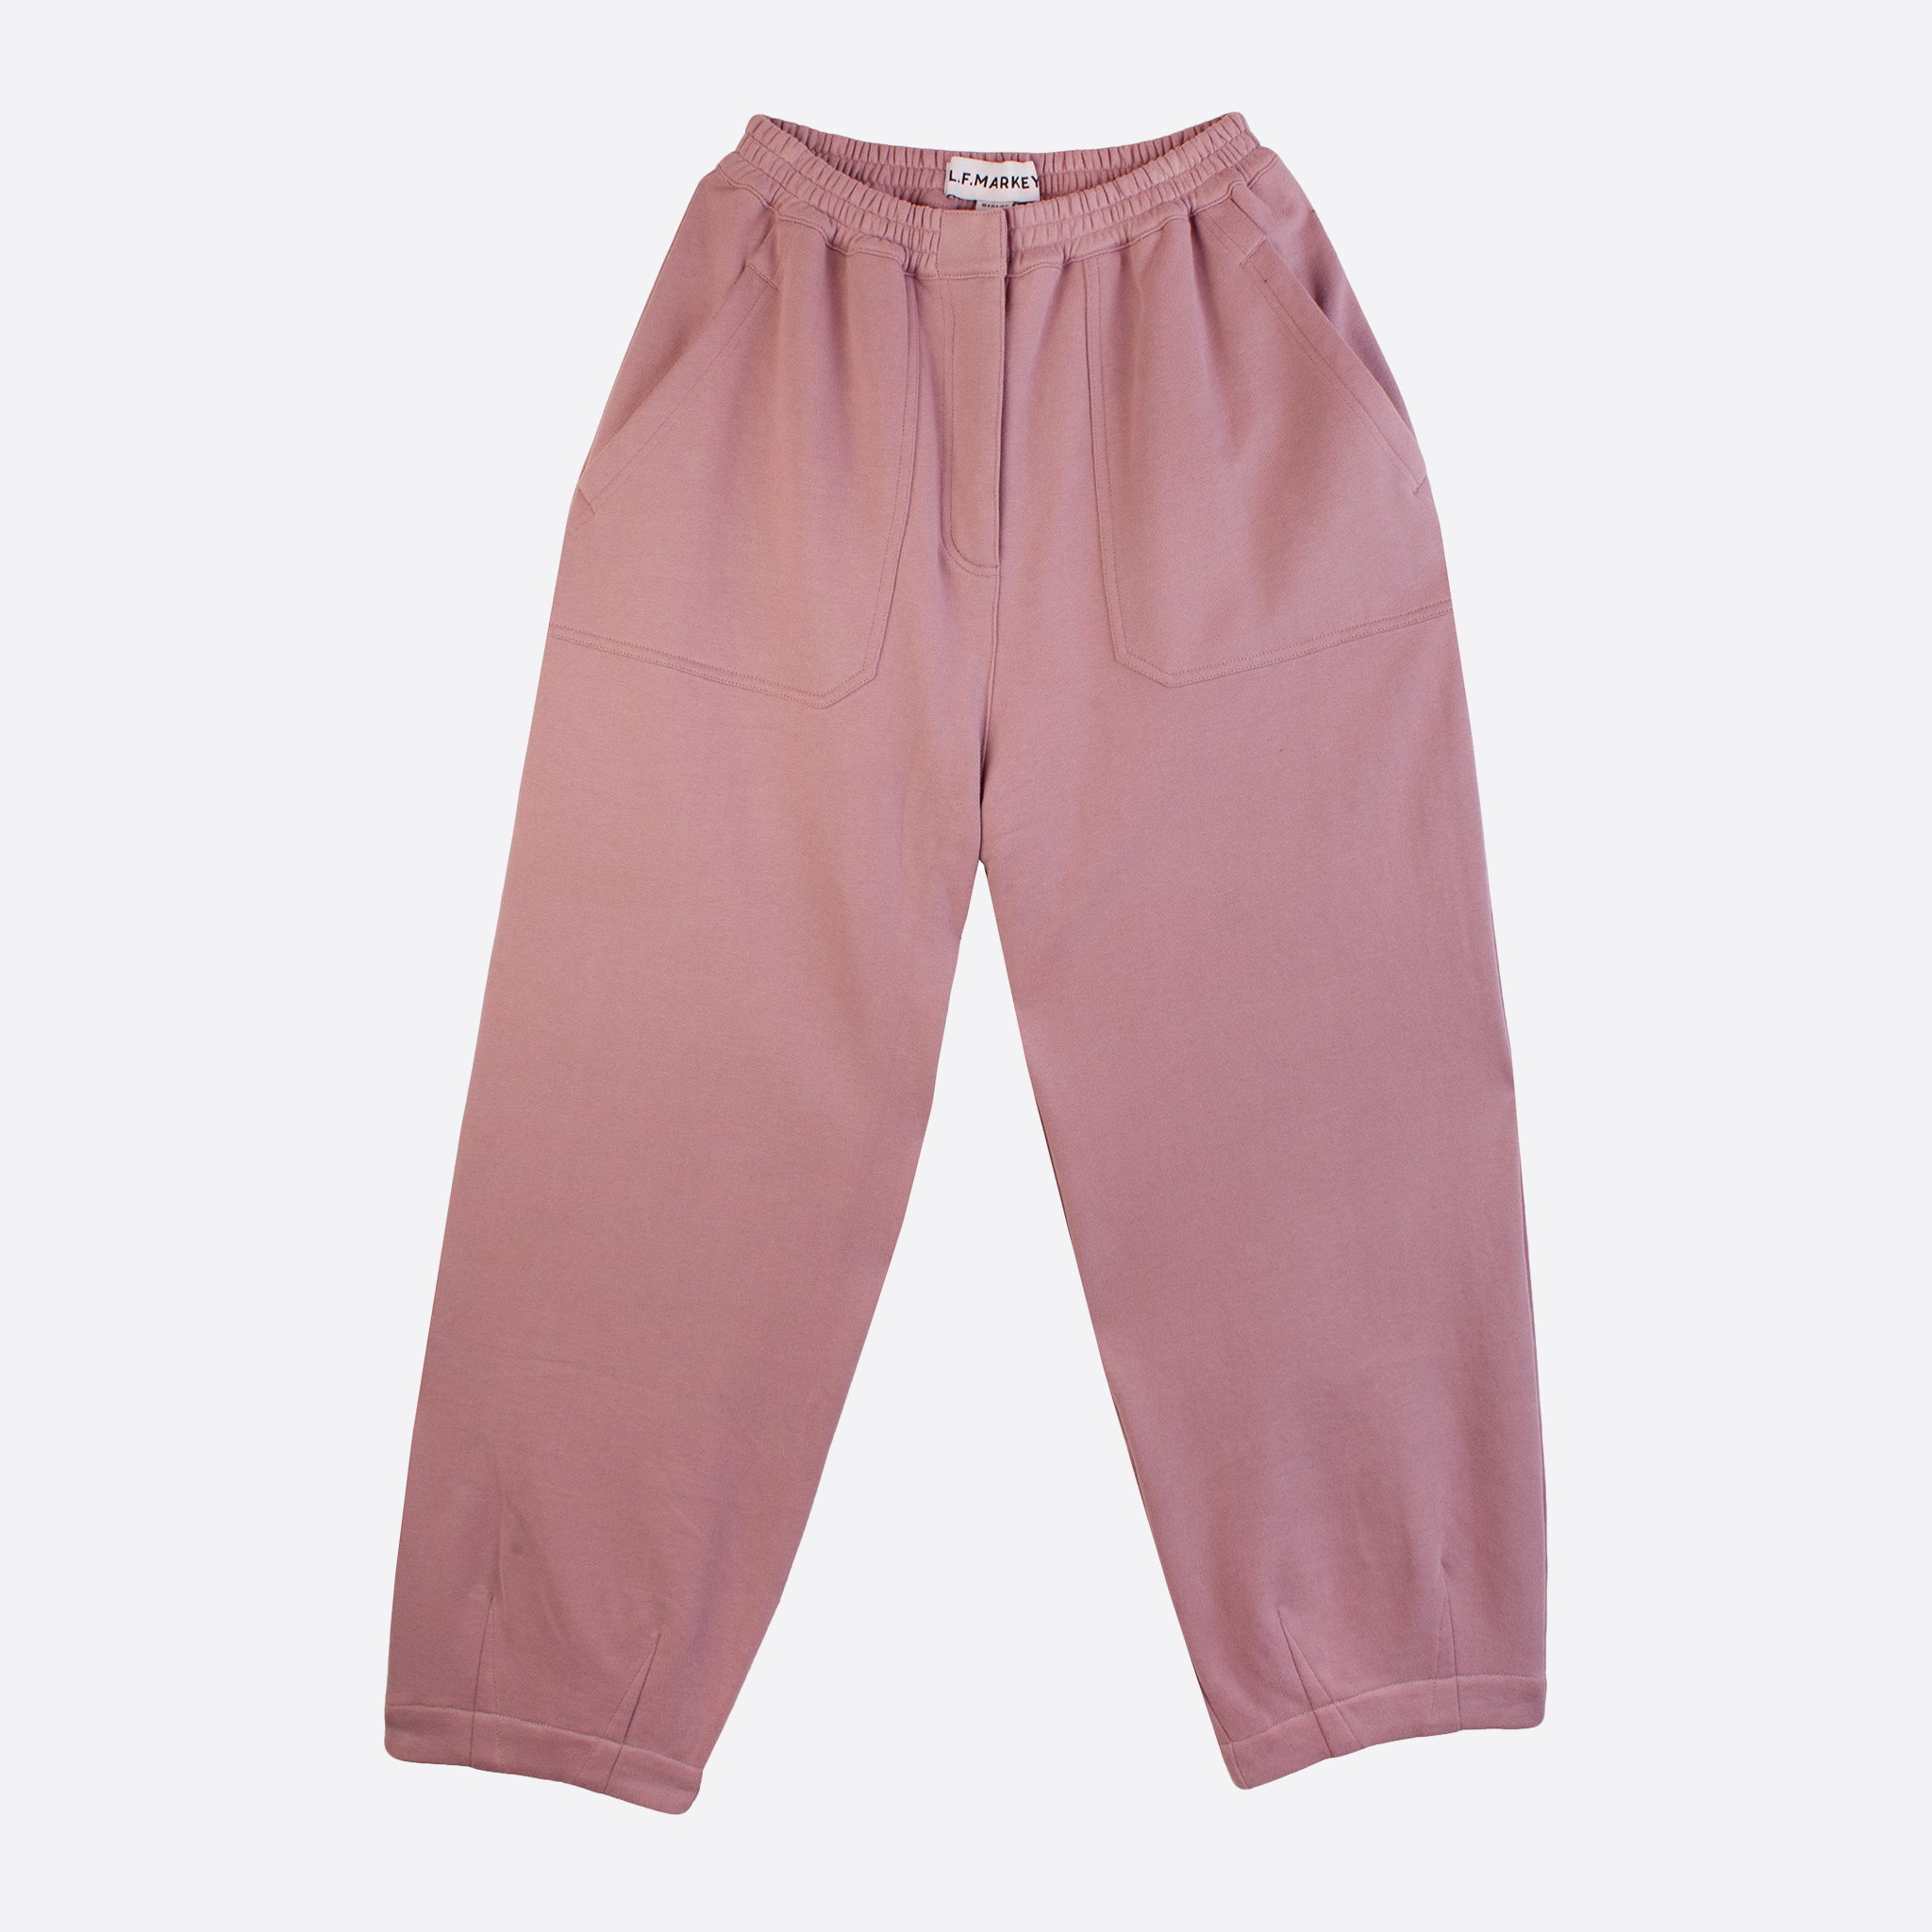 LF Markey Jameson Trouser in Lilac